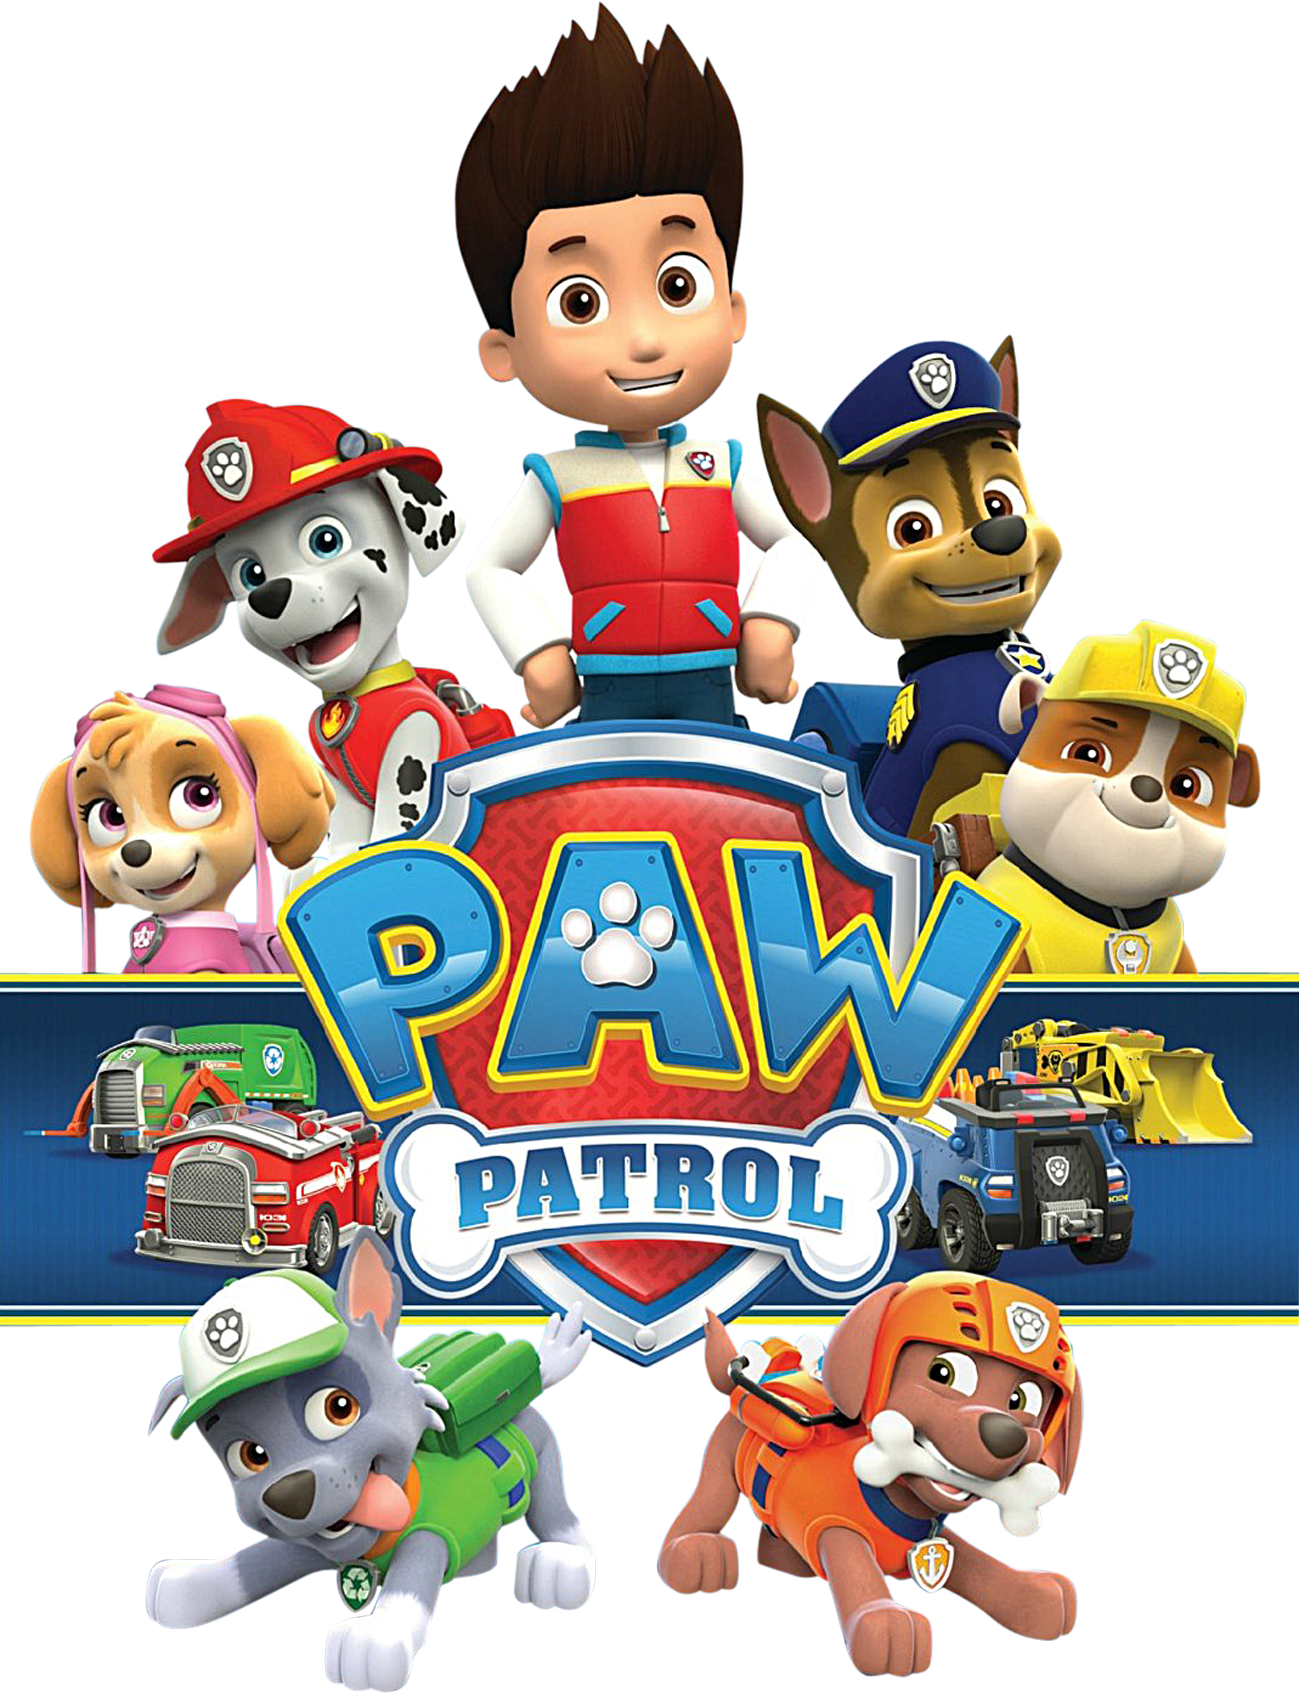 paw patrol background png